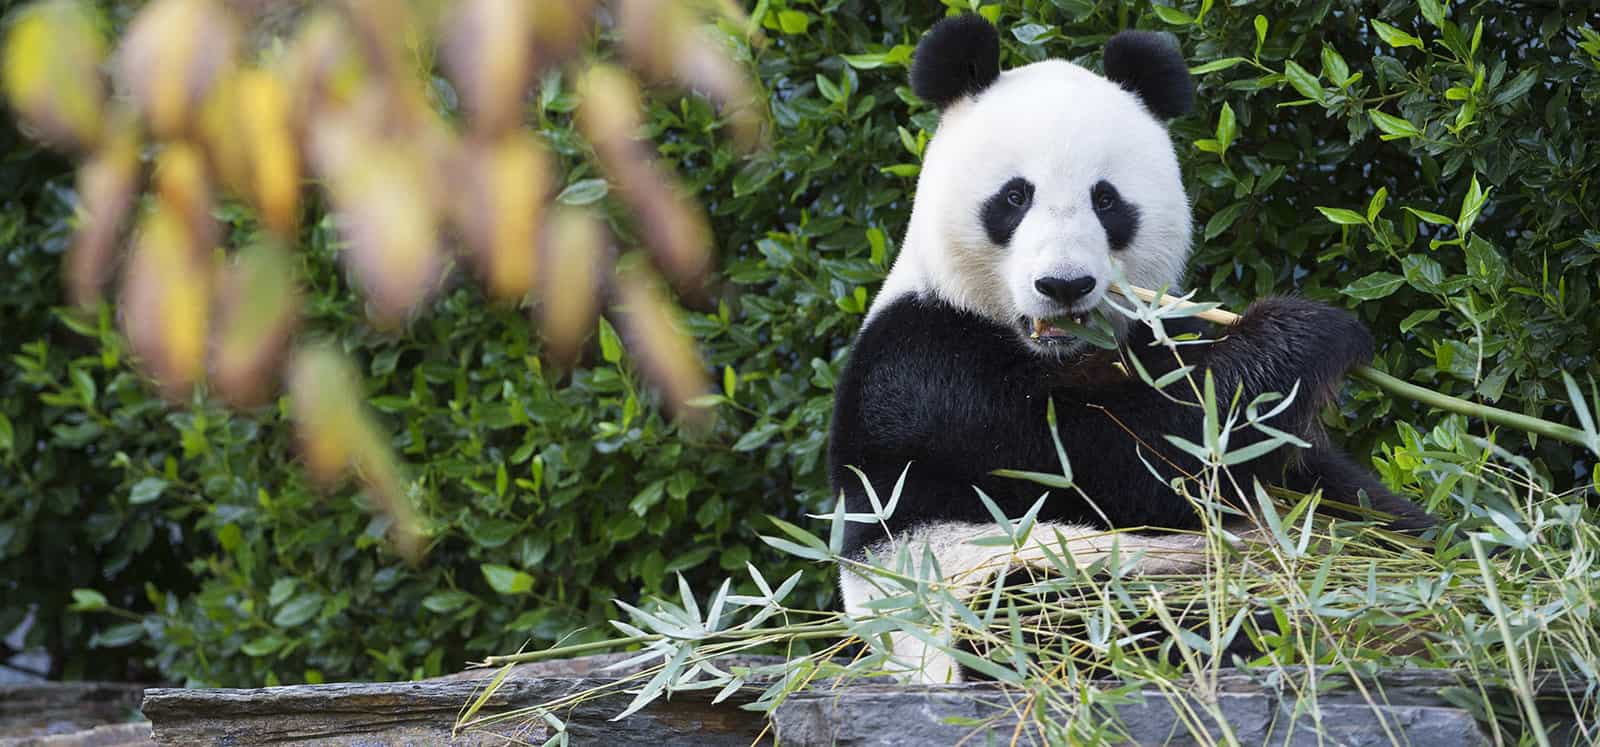 Giant Panda chewing bamboo at Adelaide Zoo